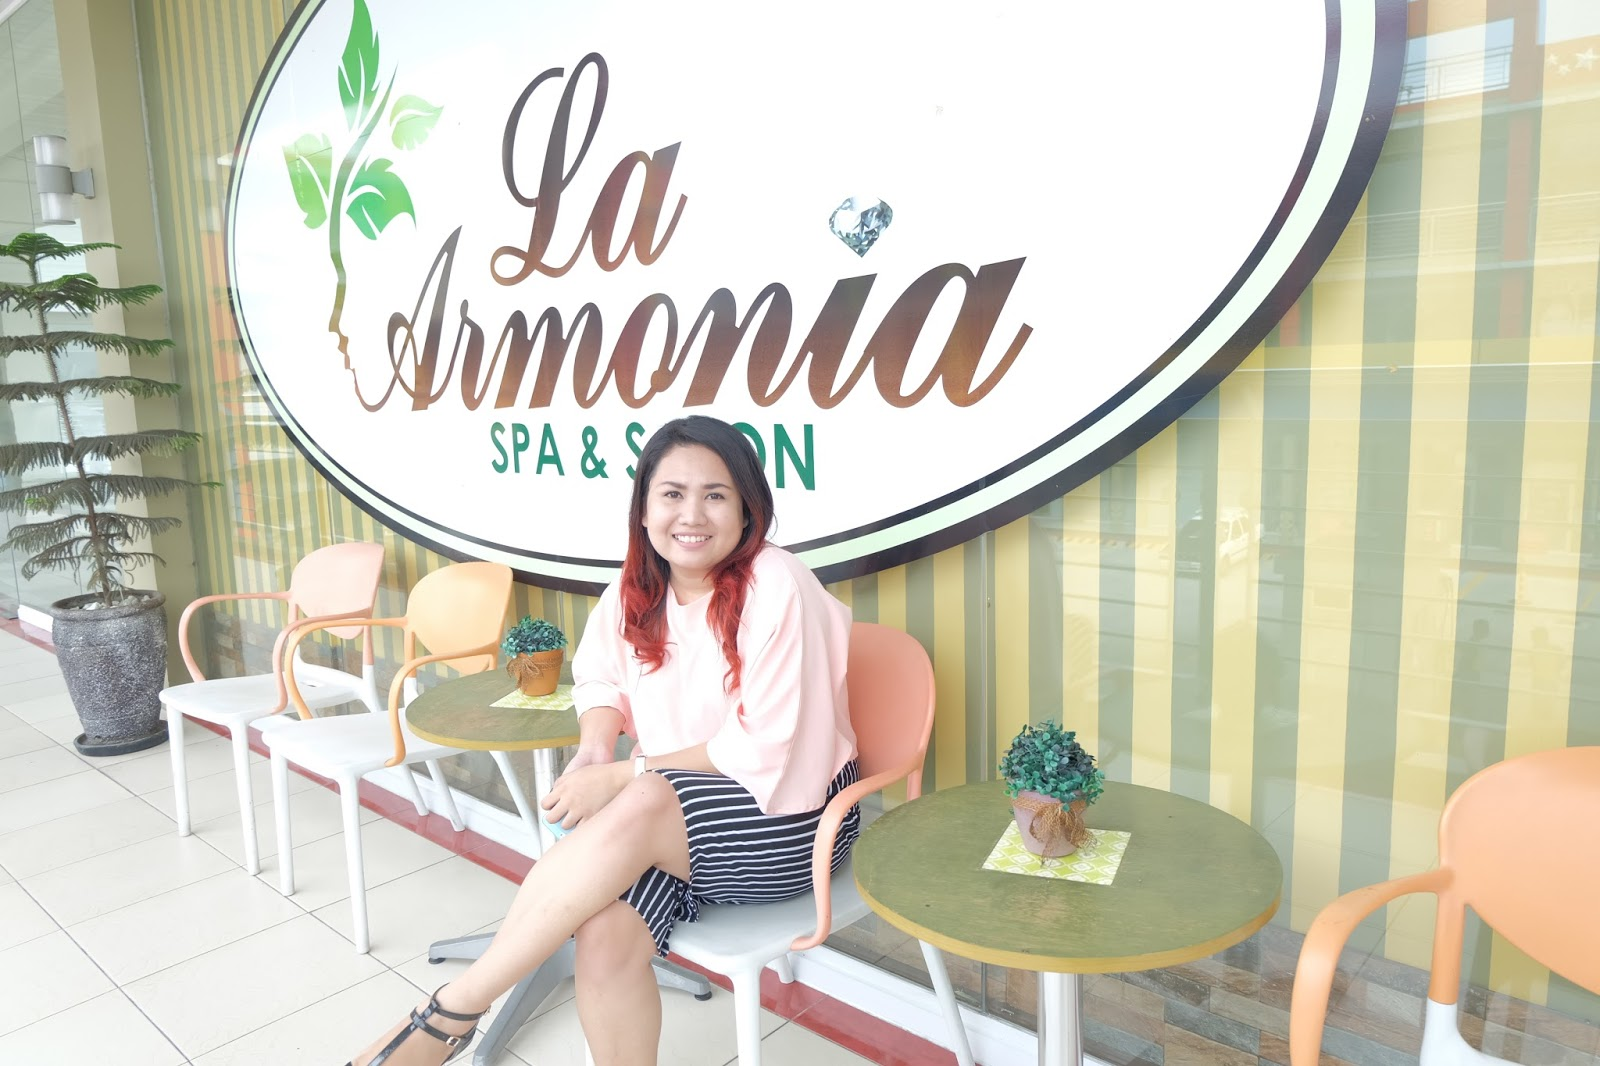 Relax and Refresh at La Armonia Theater Spa and Salon